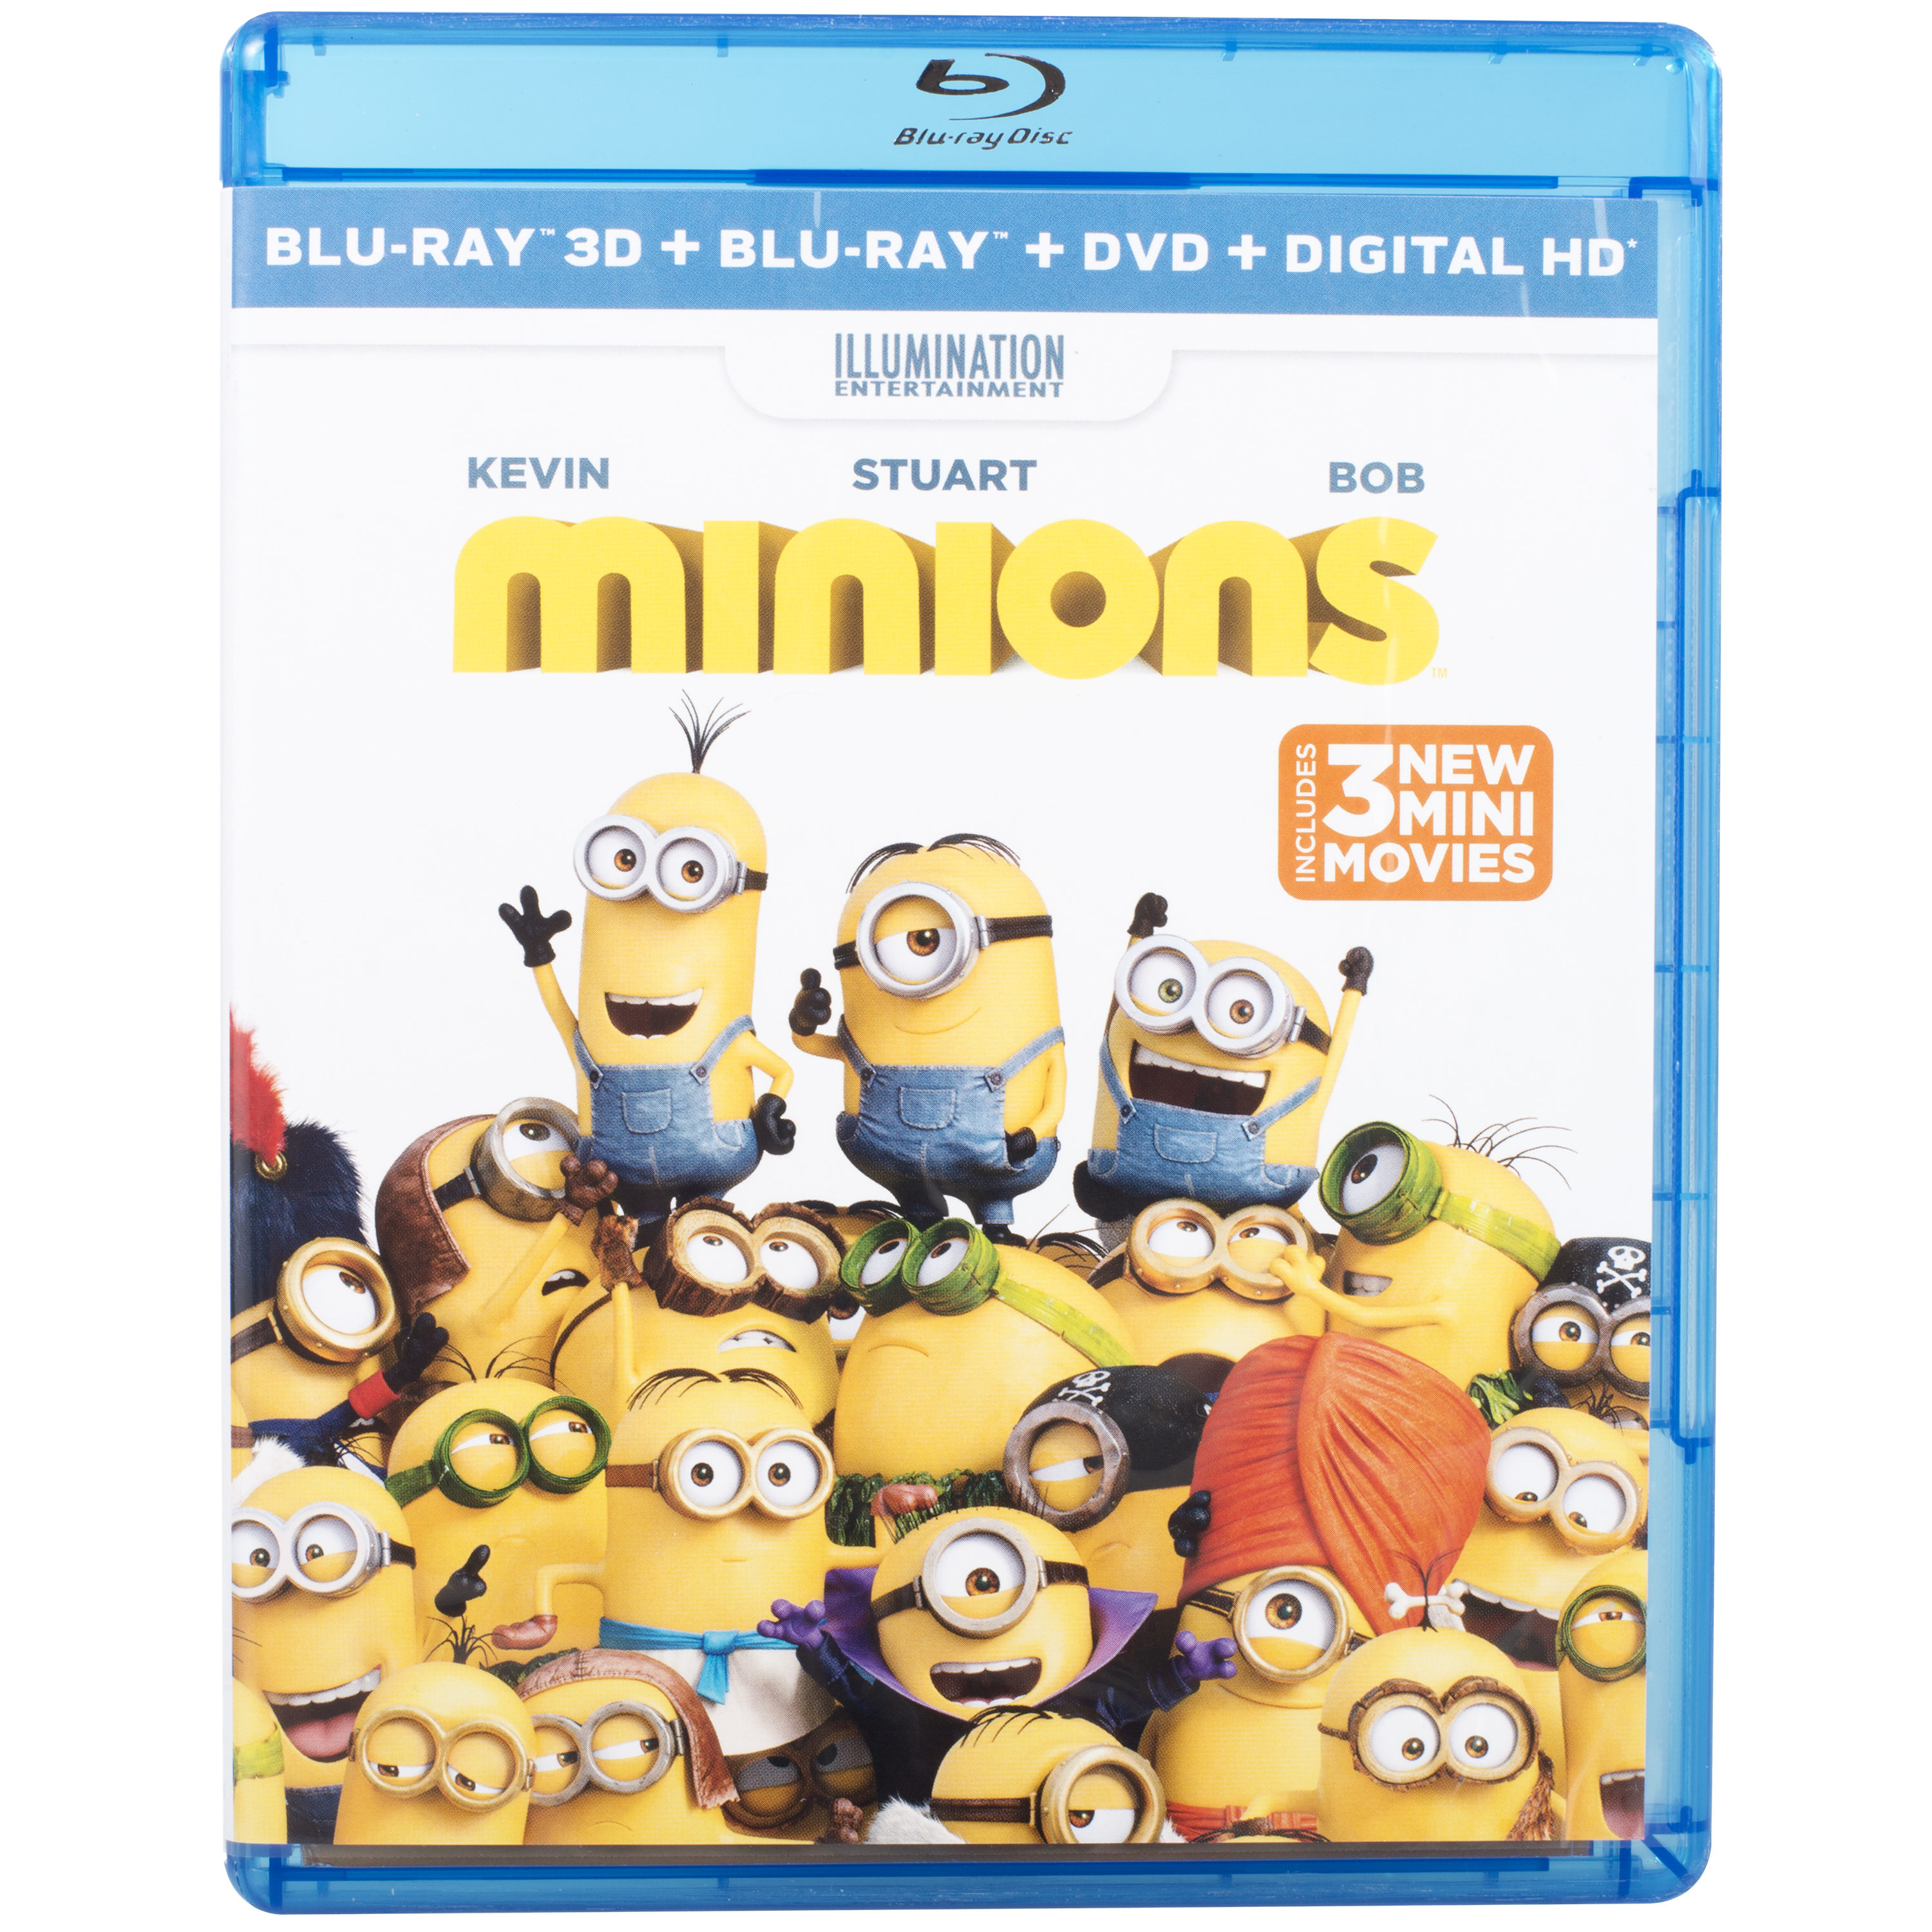 Minions 3D Blu-ray + Blu-ray + DVD + Digital HD